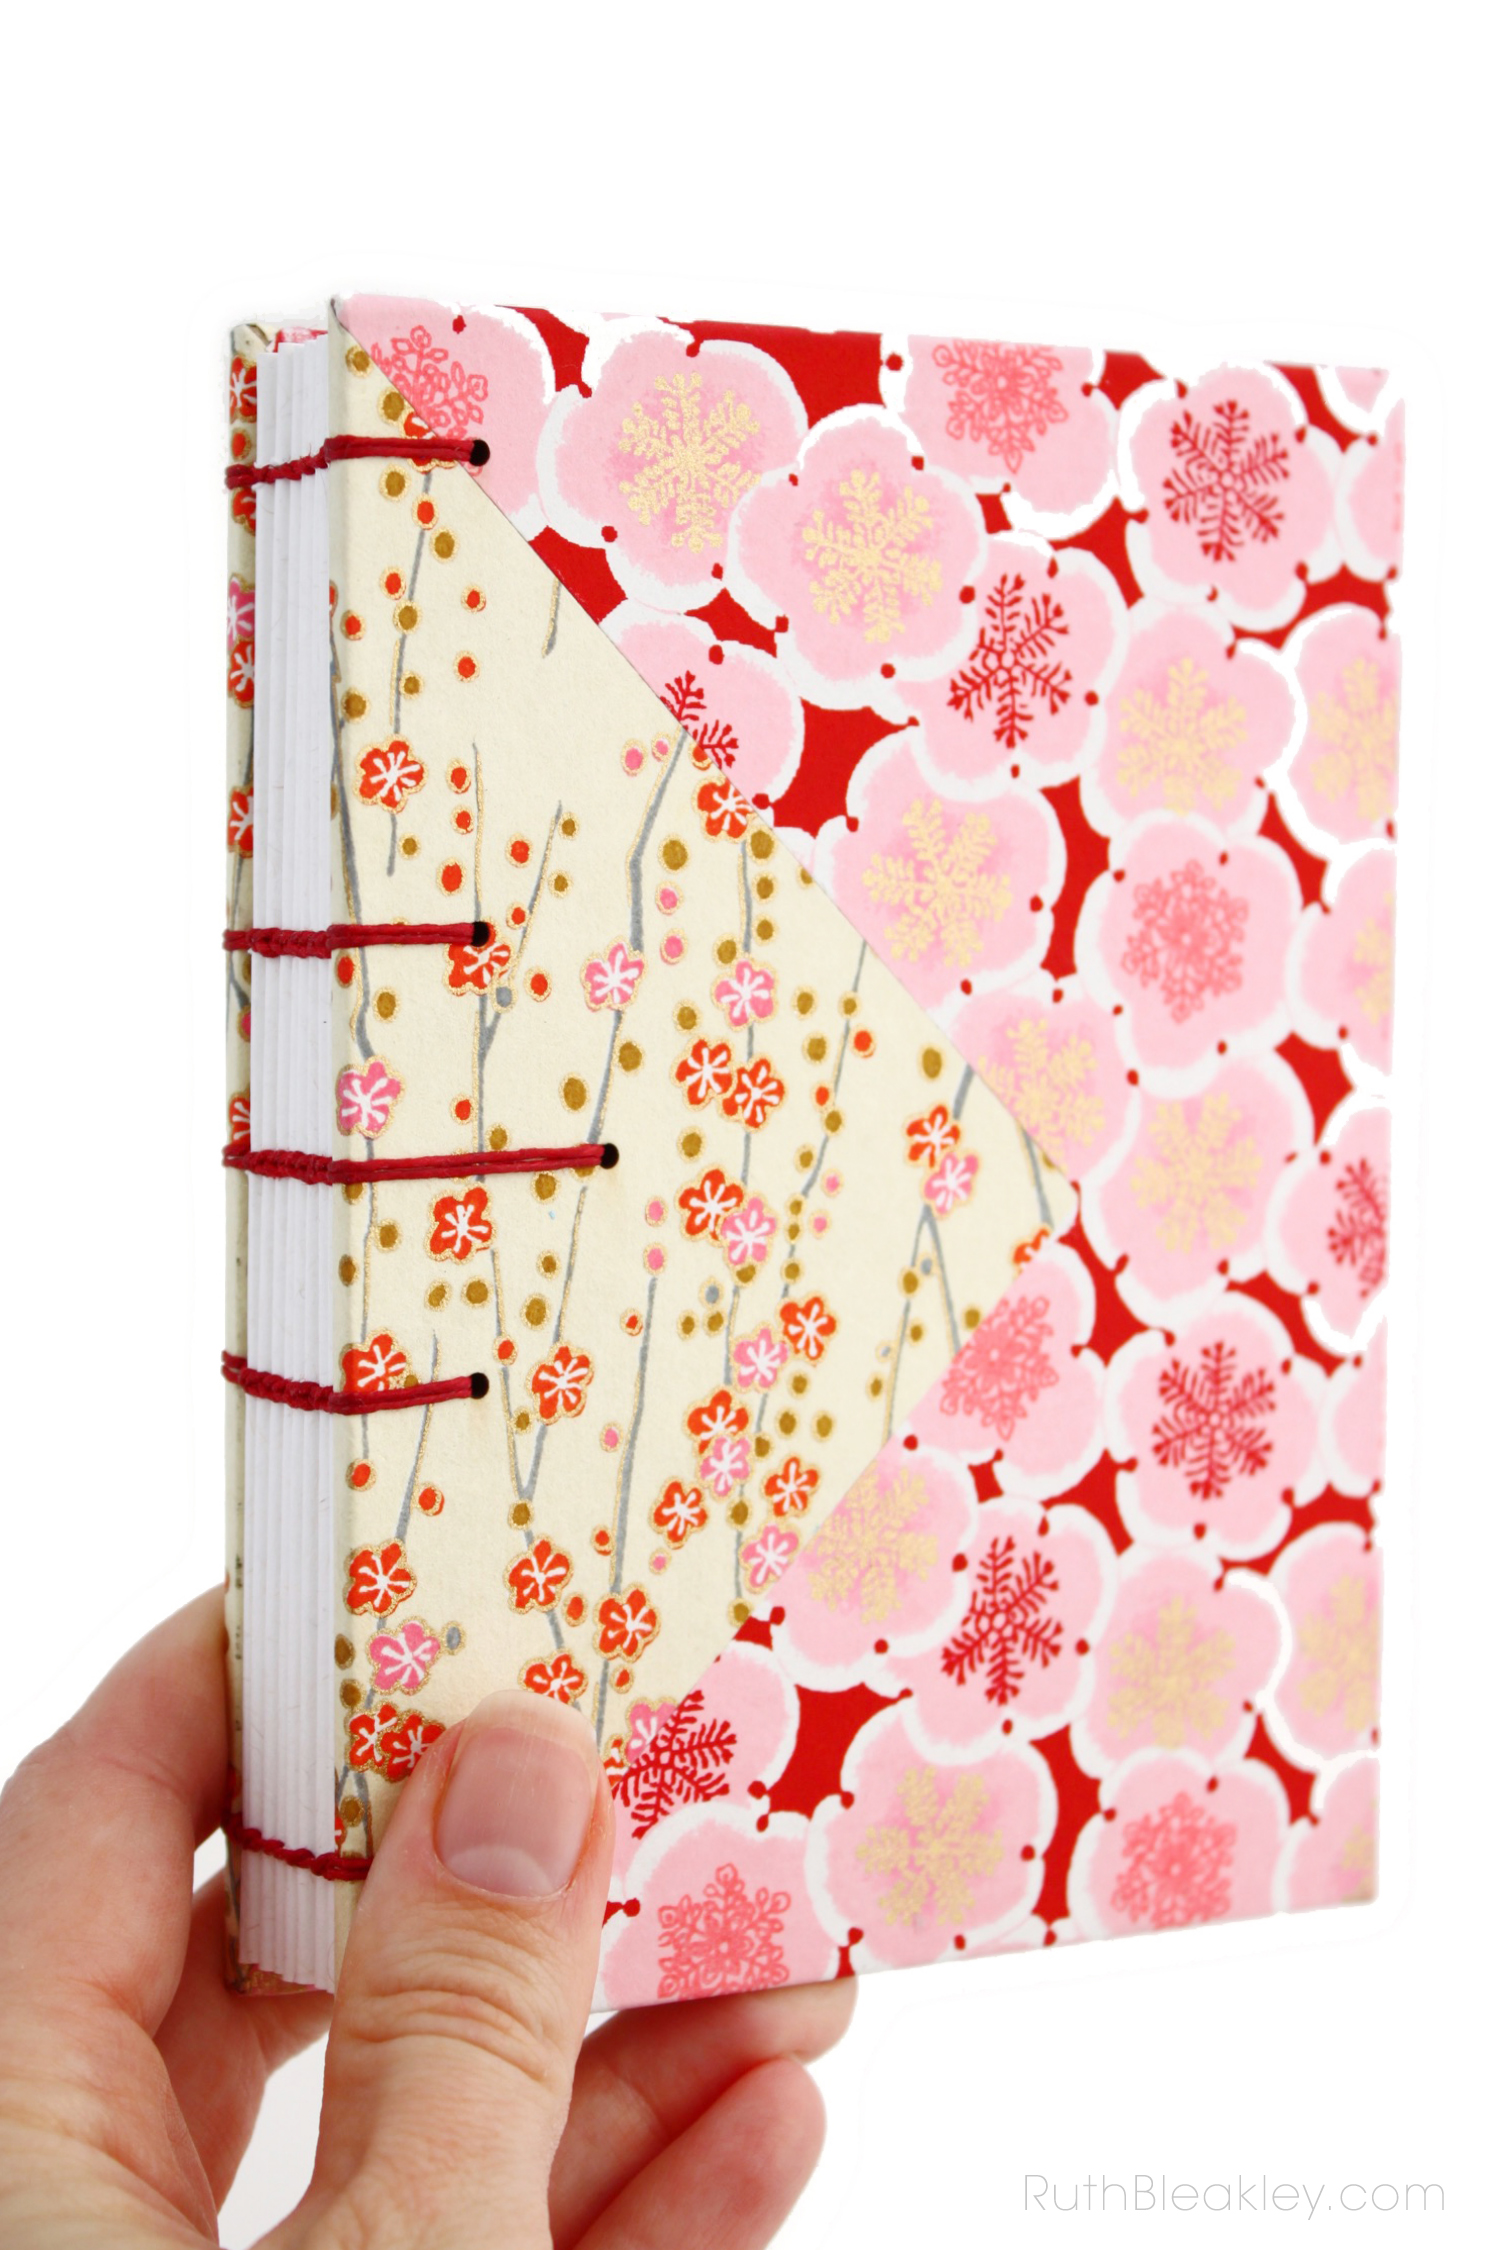 Colorful unlined blank art journals handmade by Ruth Bleakley - cherry blossom